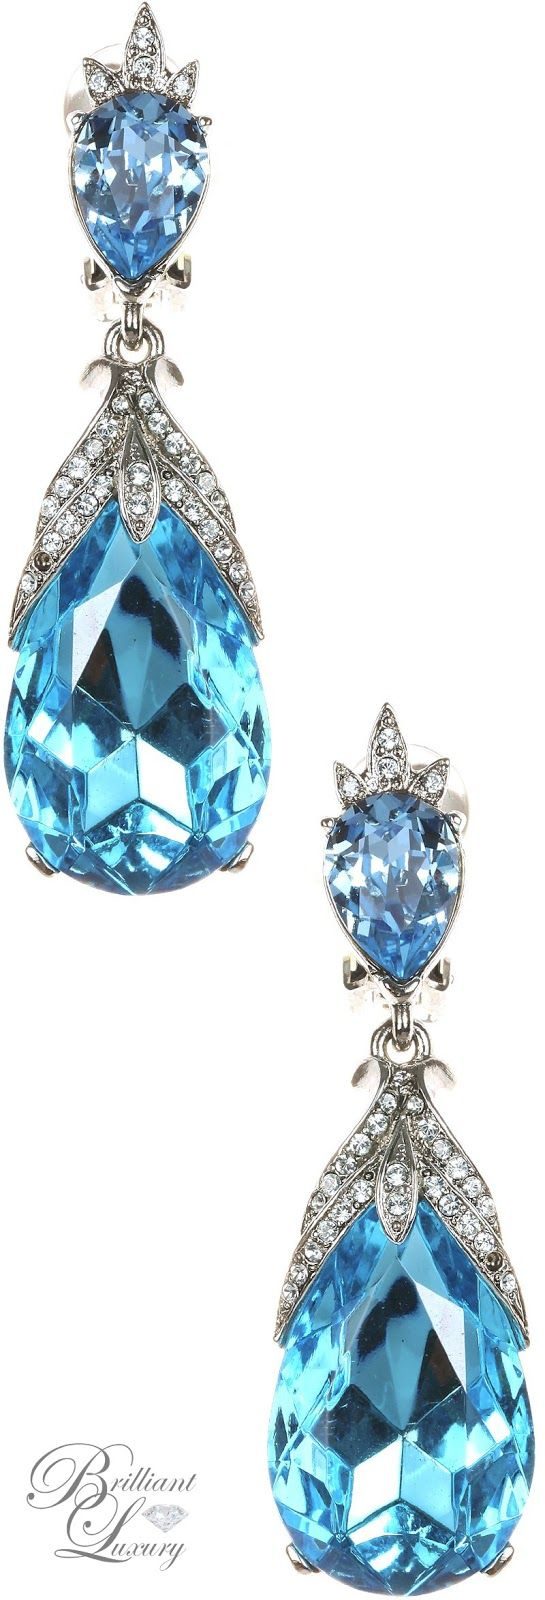 Brilliant Luxury * Oscar de la Renta Bold Teardrop Earrings